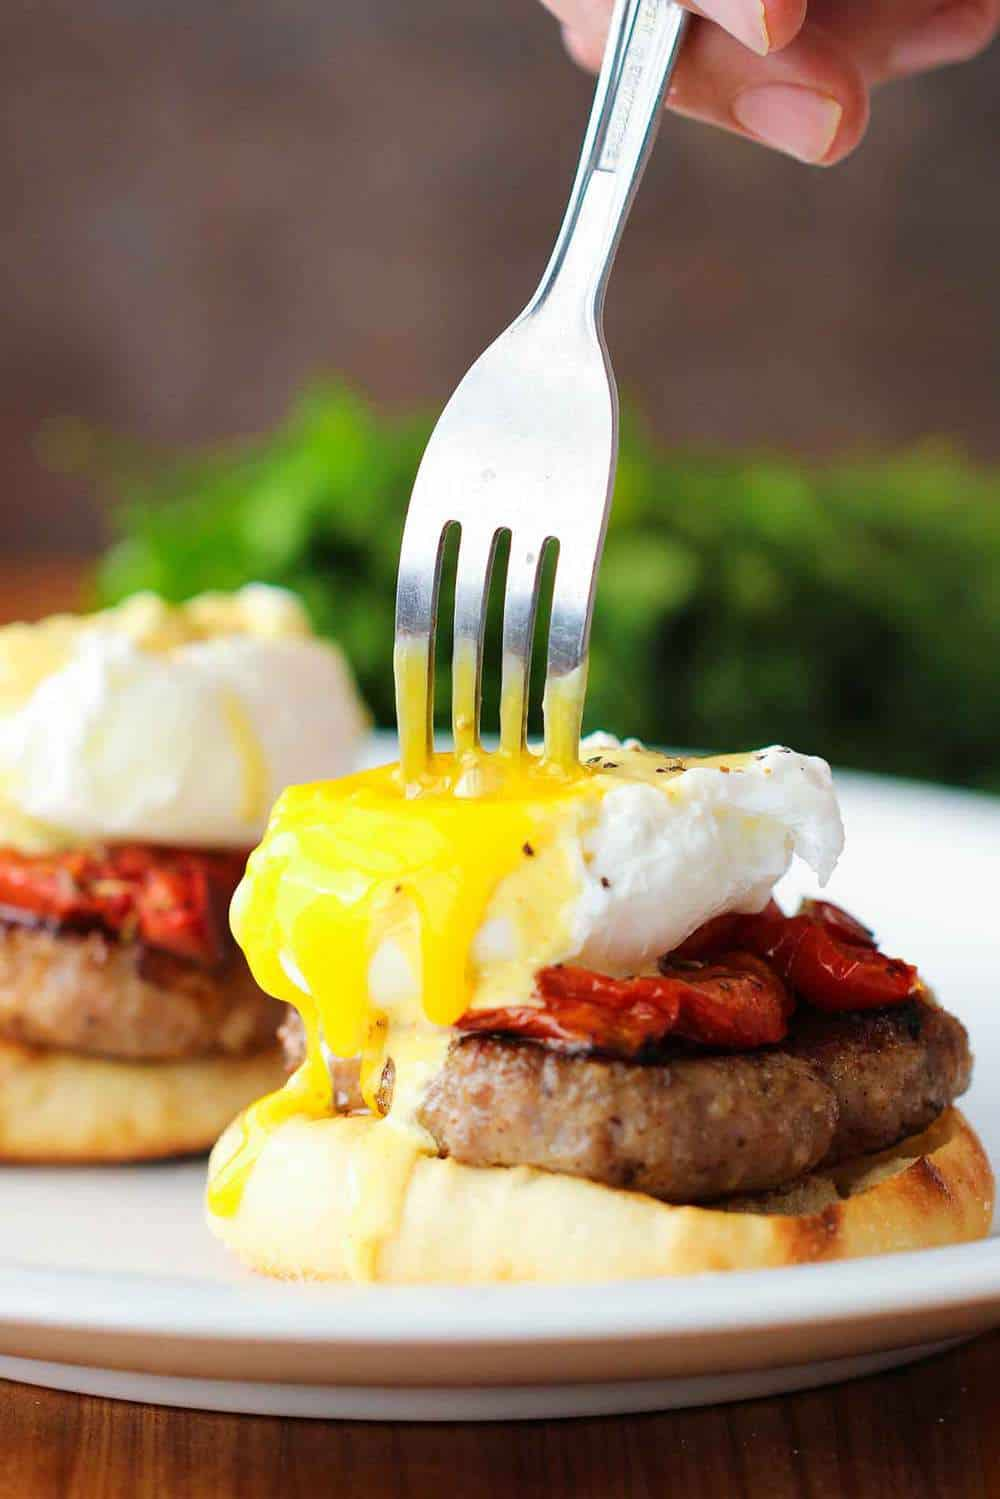 Eggs blackstone with sausage recipe